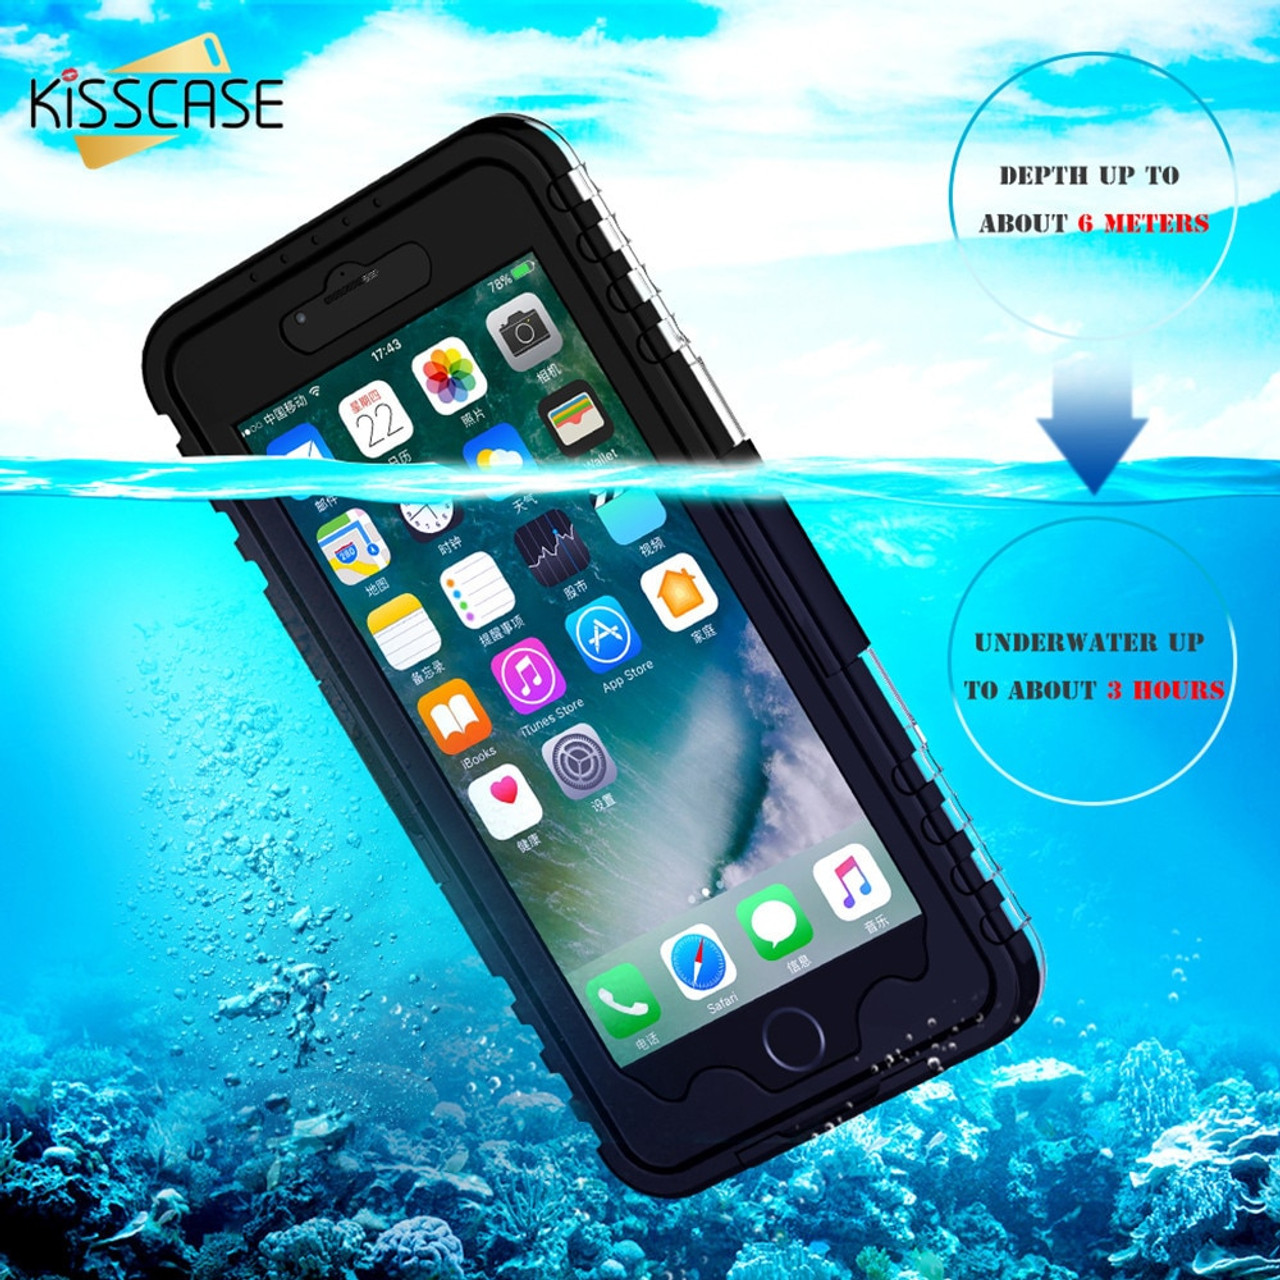 Kisscase Waterproof Case For Samsung Galaxy Note 2 3 4 5 S8 Plus S7 S6 Edge Cover Ip68 Diving Phone Case For Iphone 6 6s 7 Plus Onshopdeals Com